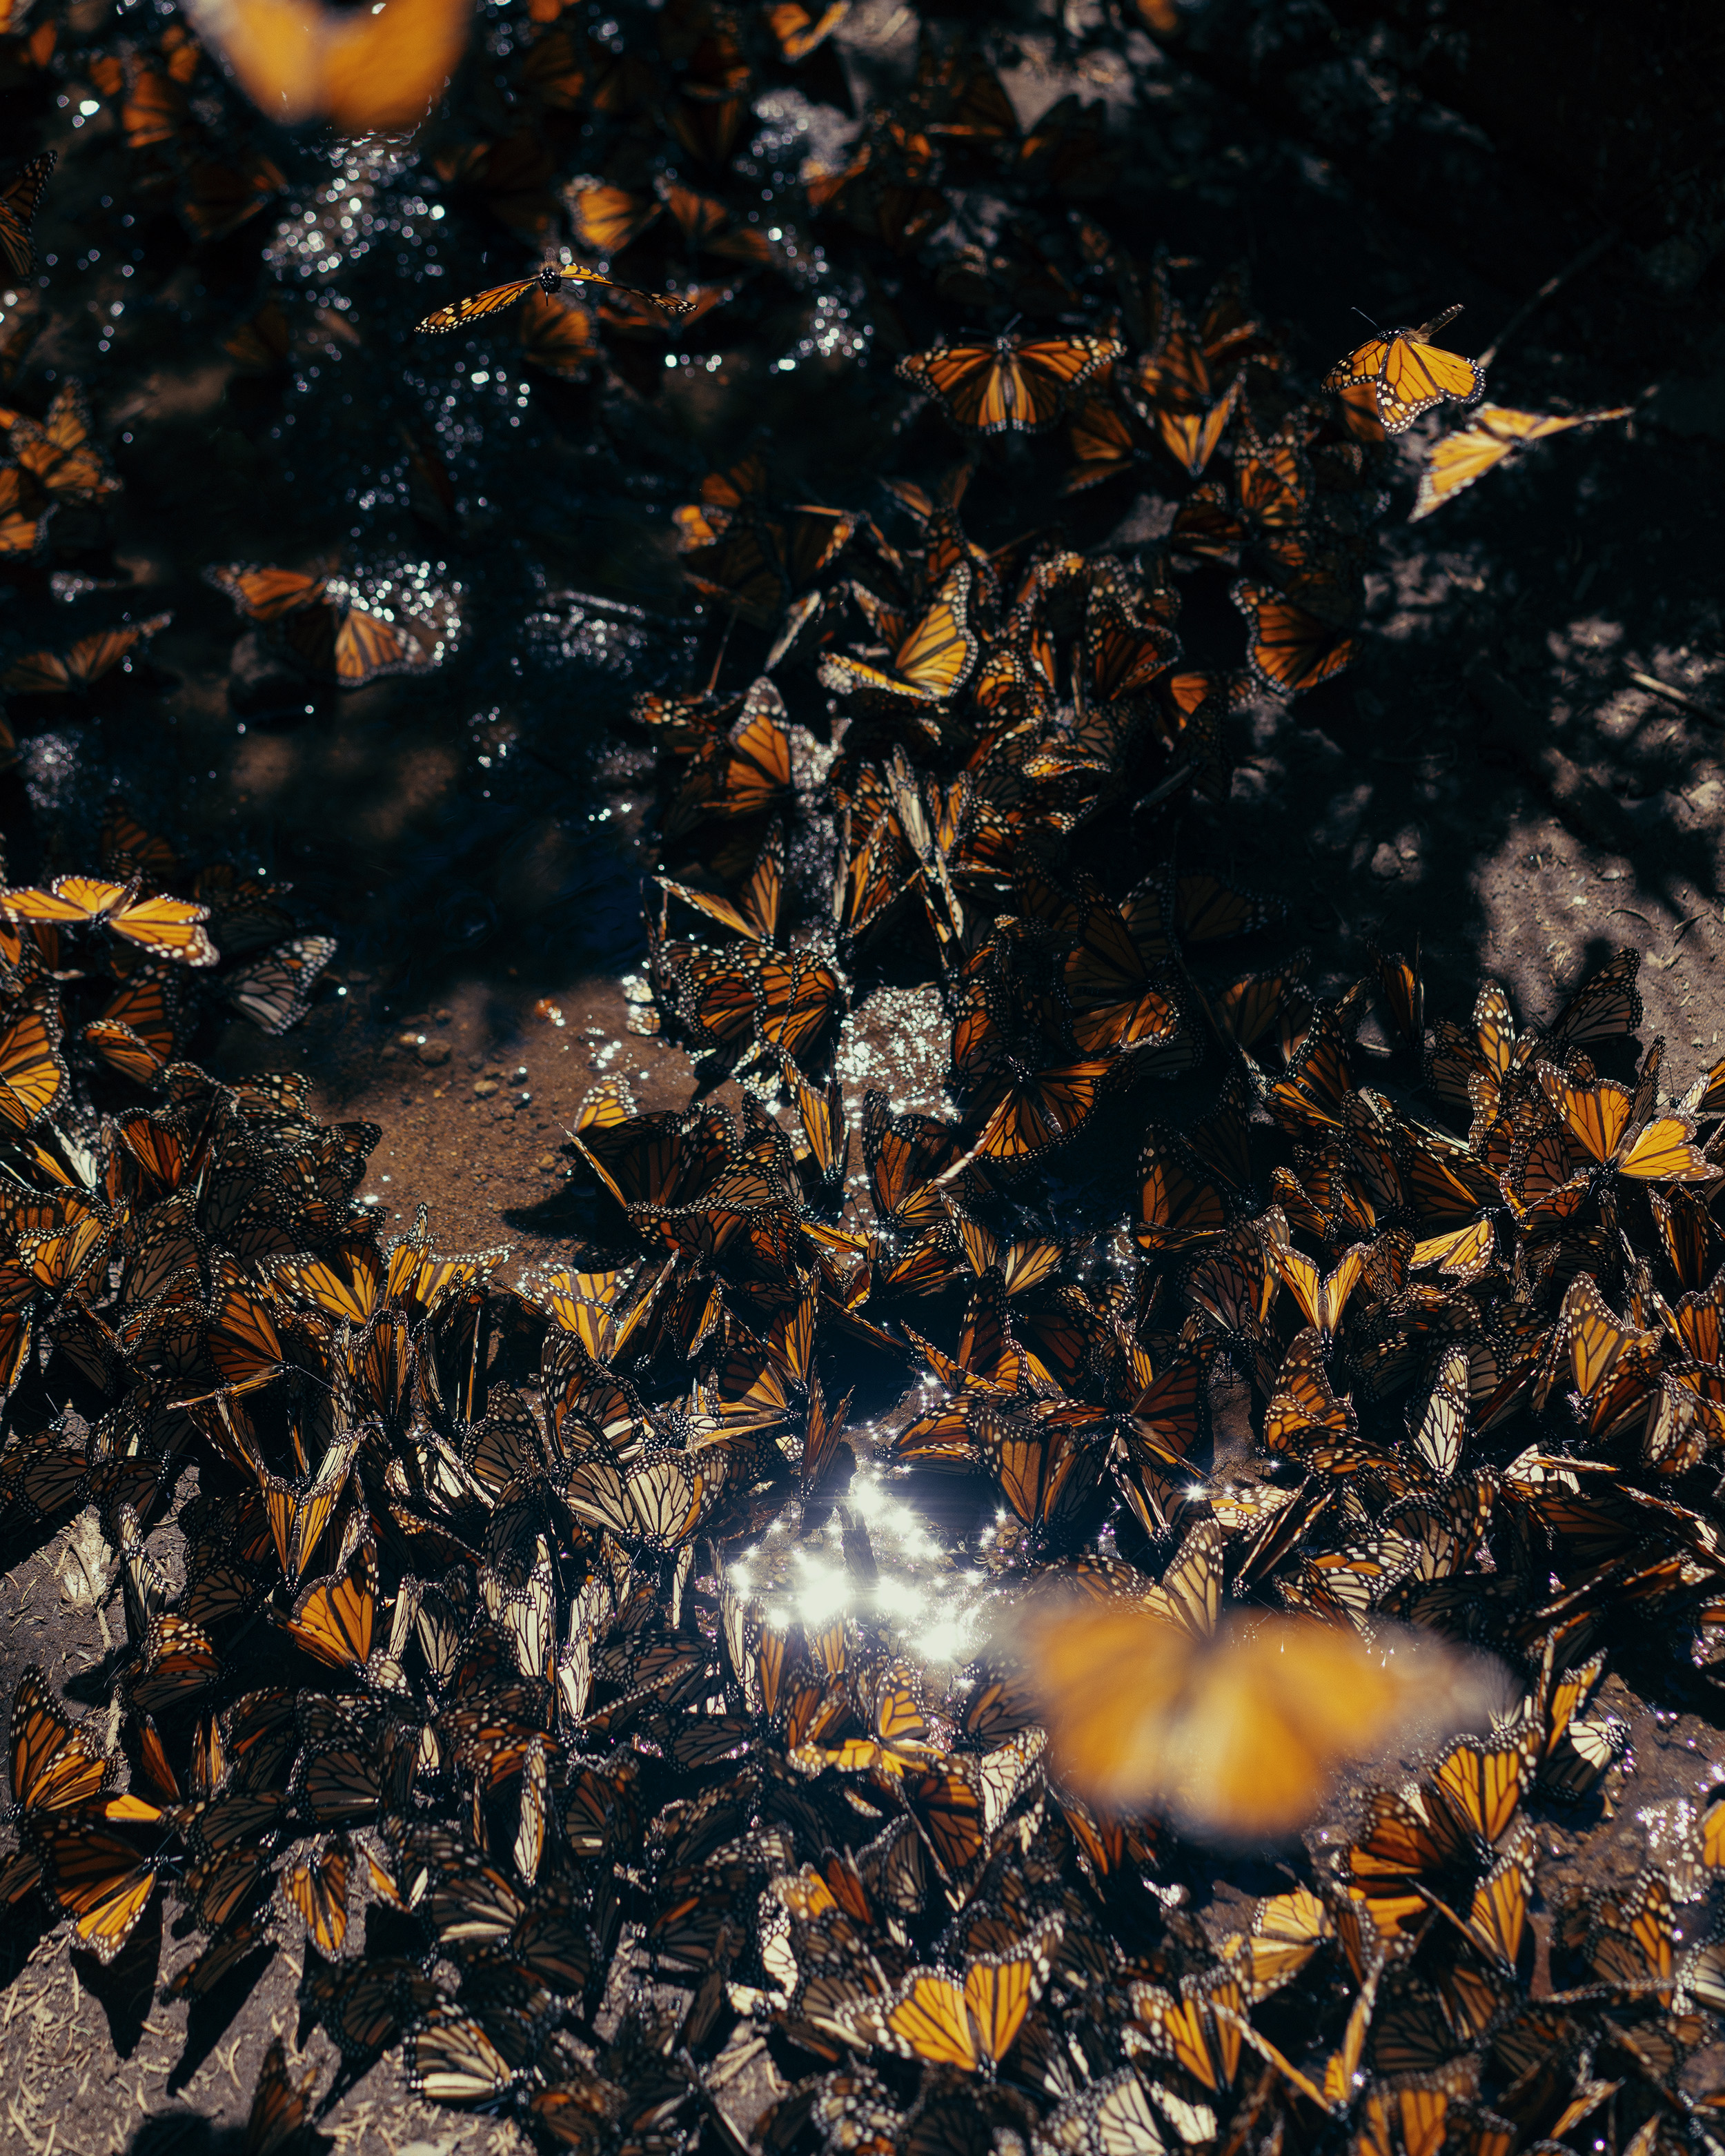 Hundreds of monarch butterflies gather together.